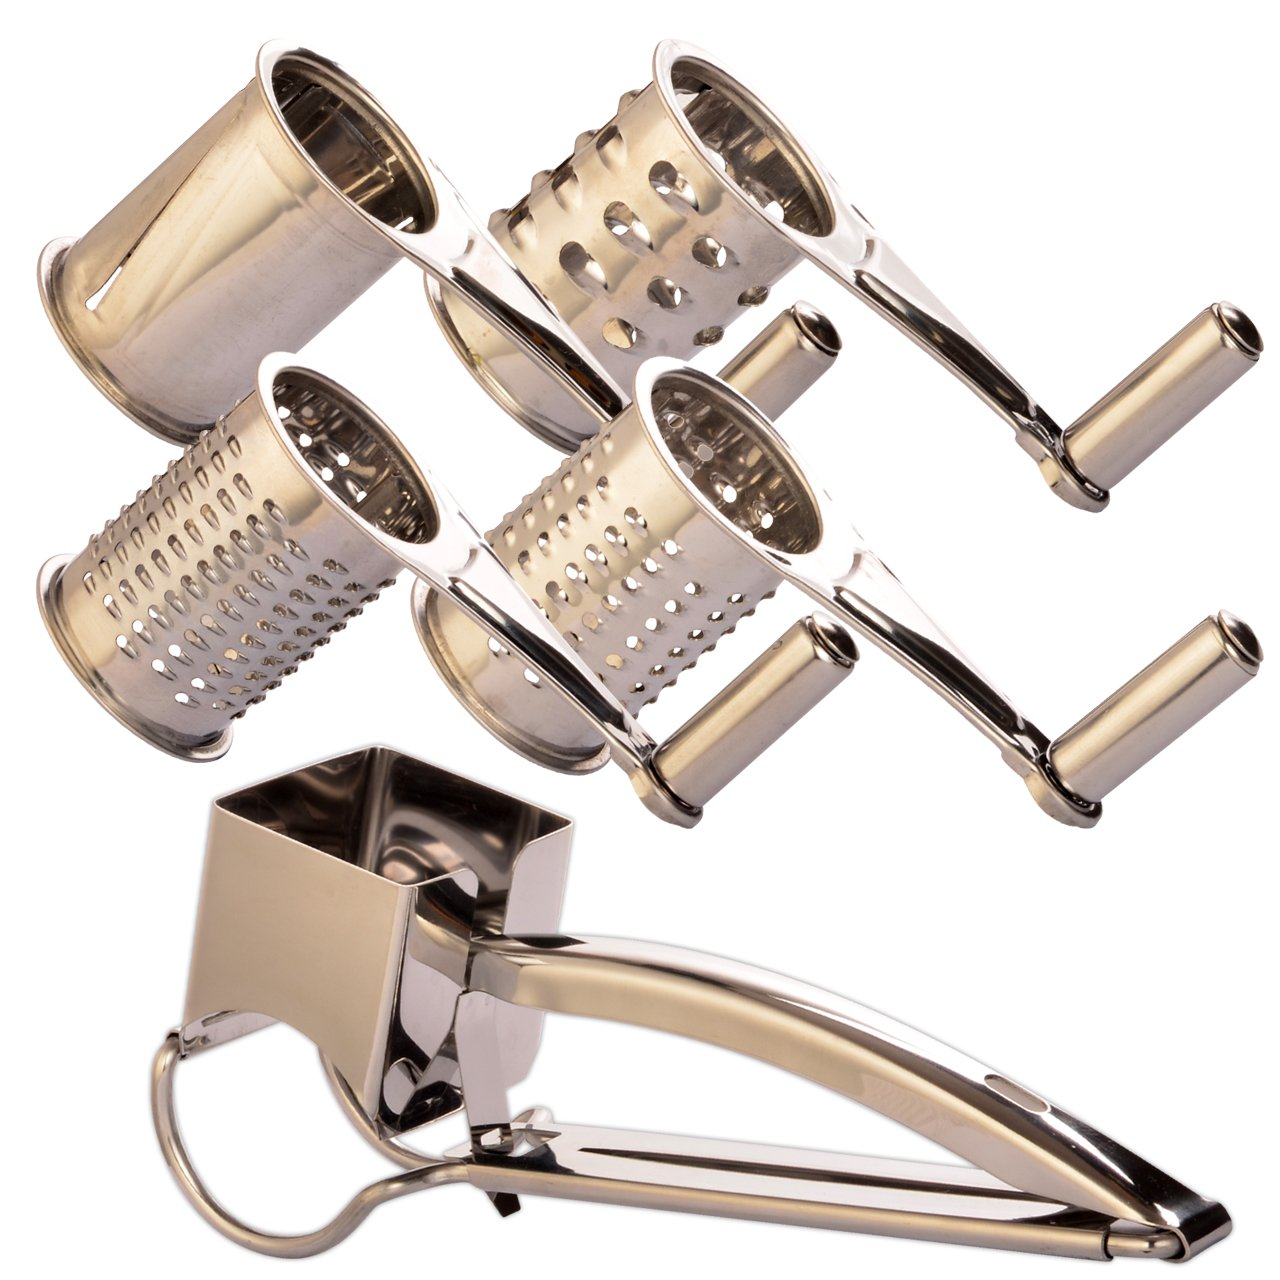 HOMER Rotary Cheese Grater Vegetable Cheese Slicer Cutter Shredder and Grinder with 4 Interchangeable Ultra Sharp Stainless Steel Drums